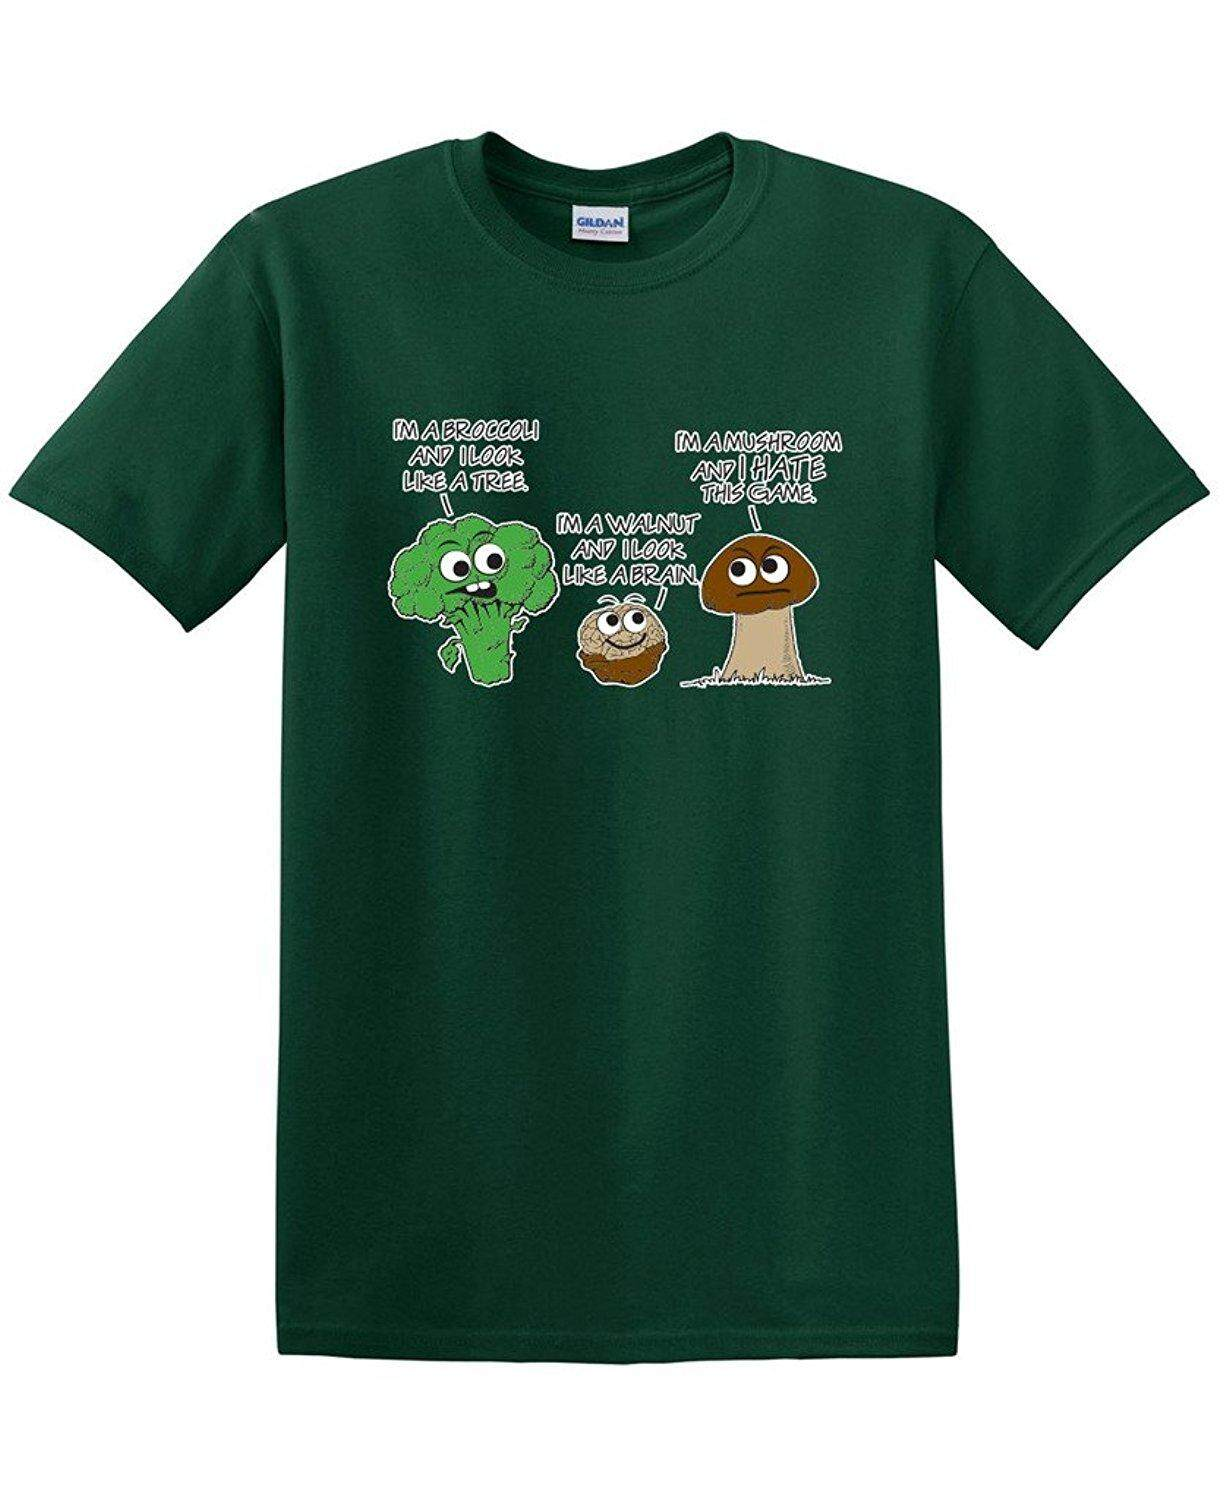 Vegetable Comparison Game Adult Humor Graphic Tee Cool Very Funny T Shirt - intl